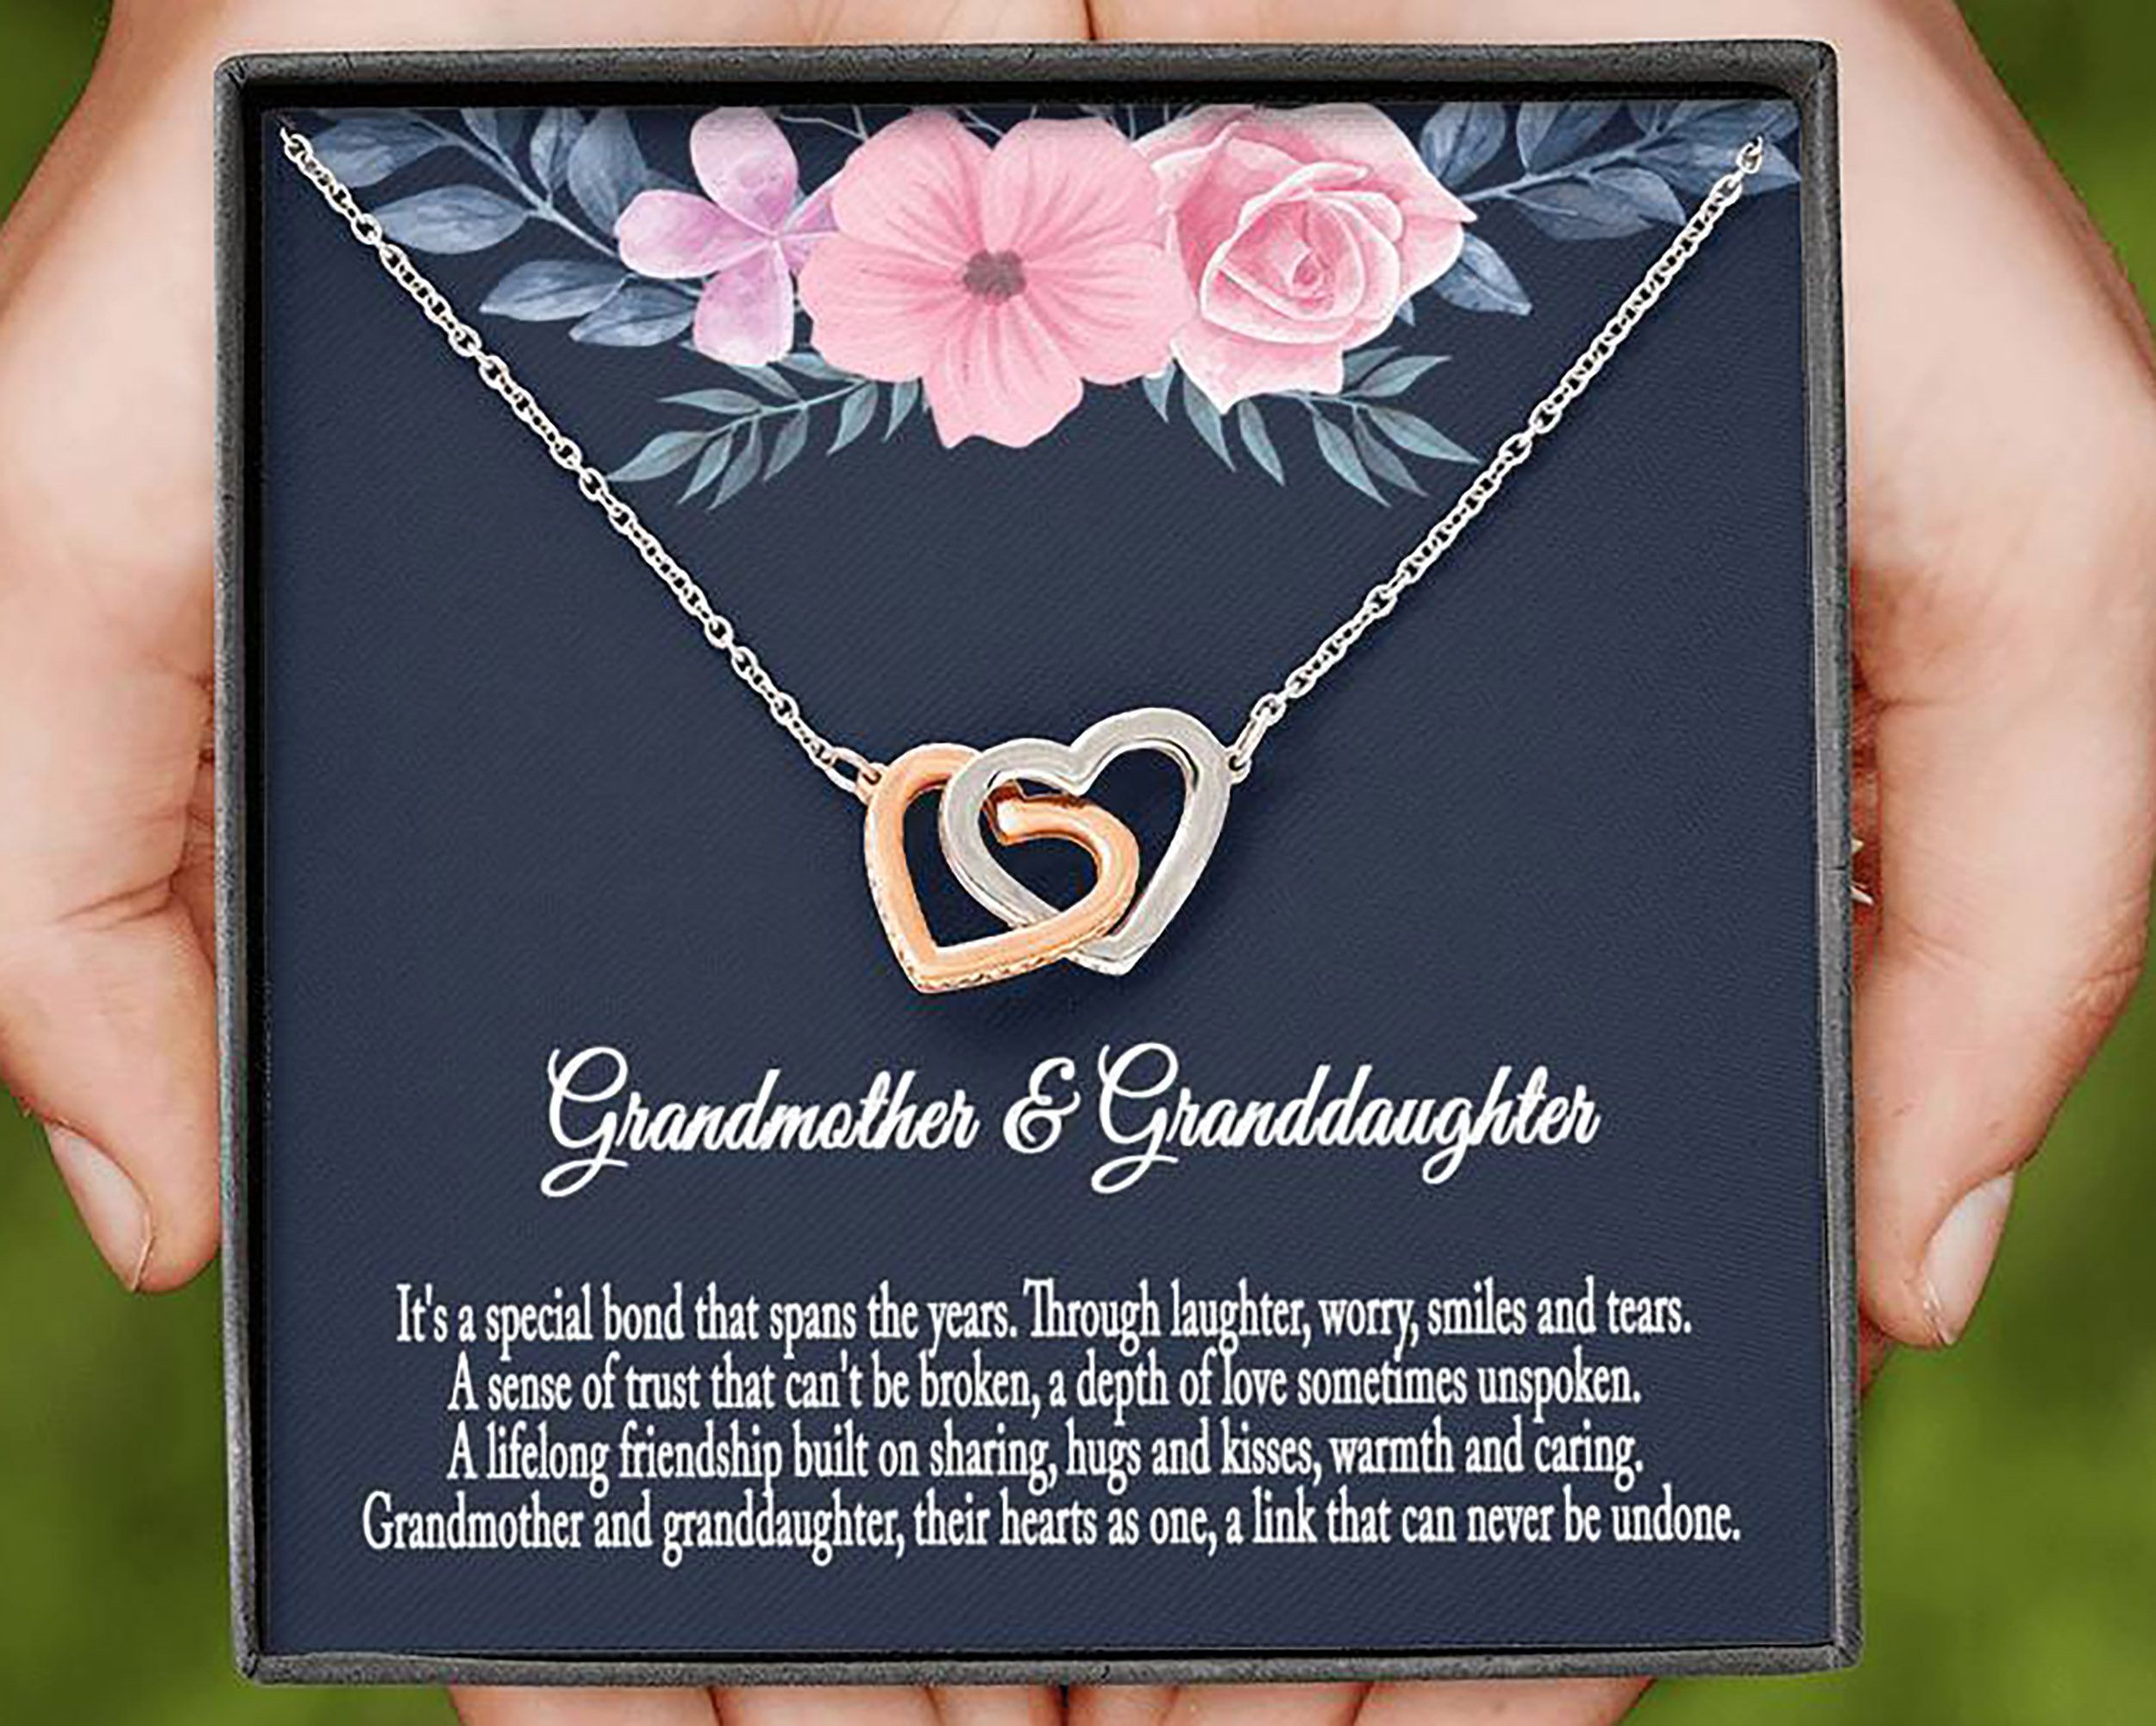 Grandma Birthday Gift Mother/'s Day Gift for Grandma Grandma Gift Gift to Grandma from Granddaughter and Grandkids Grandma Necklace